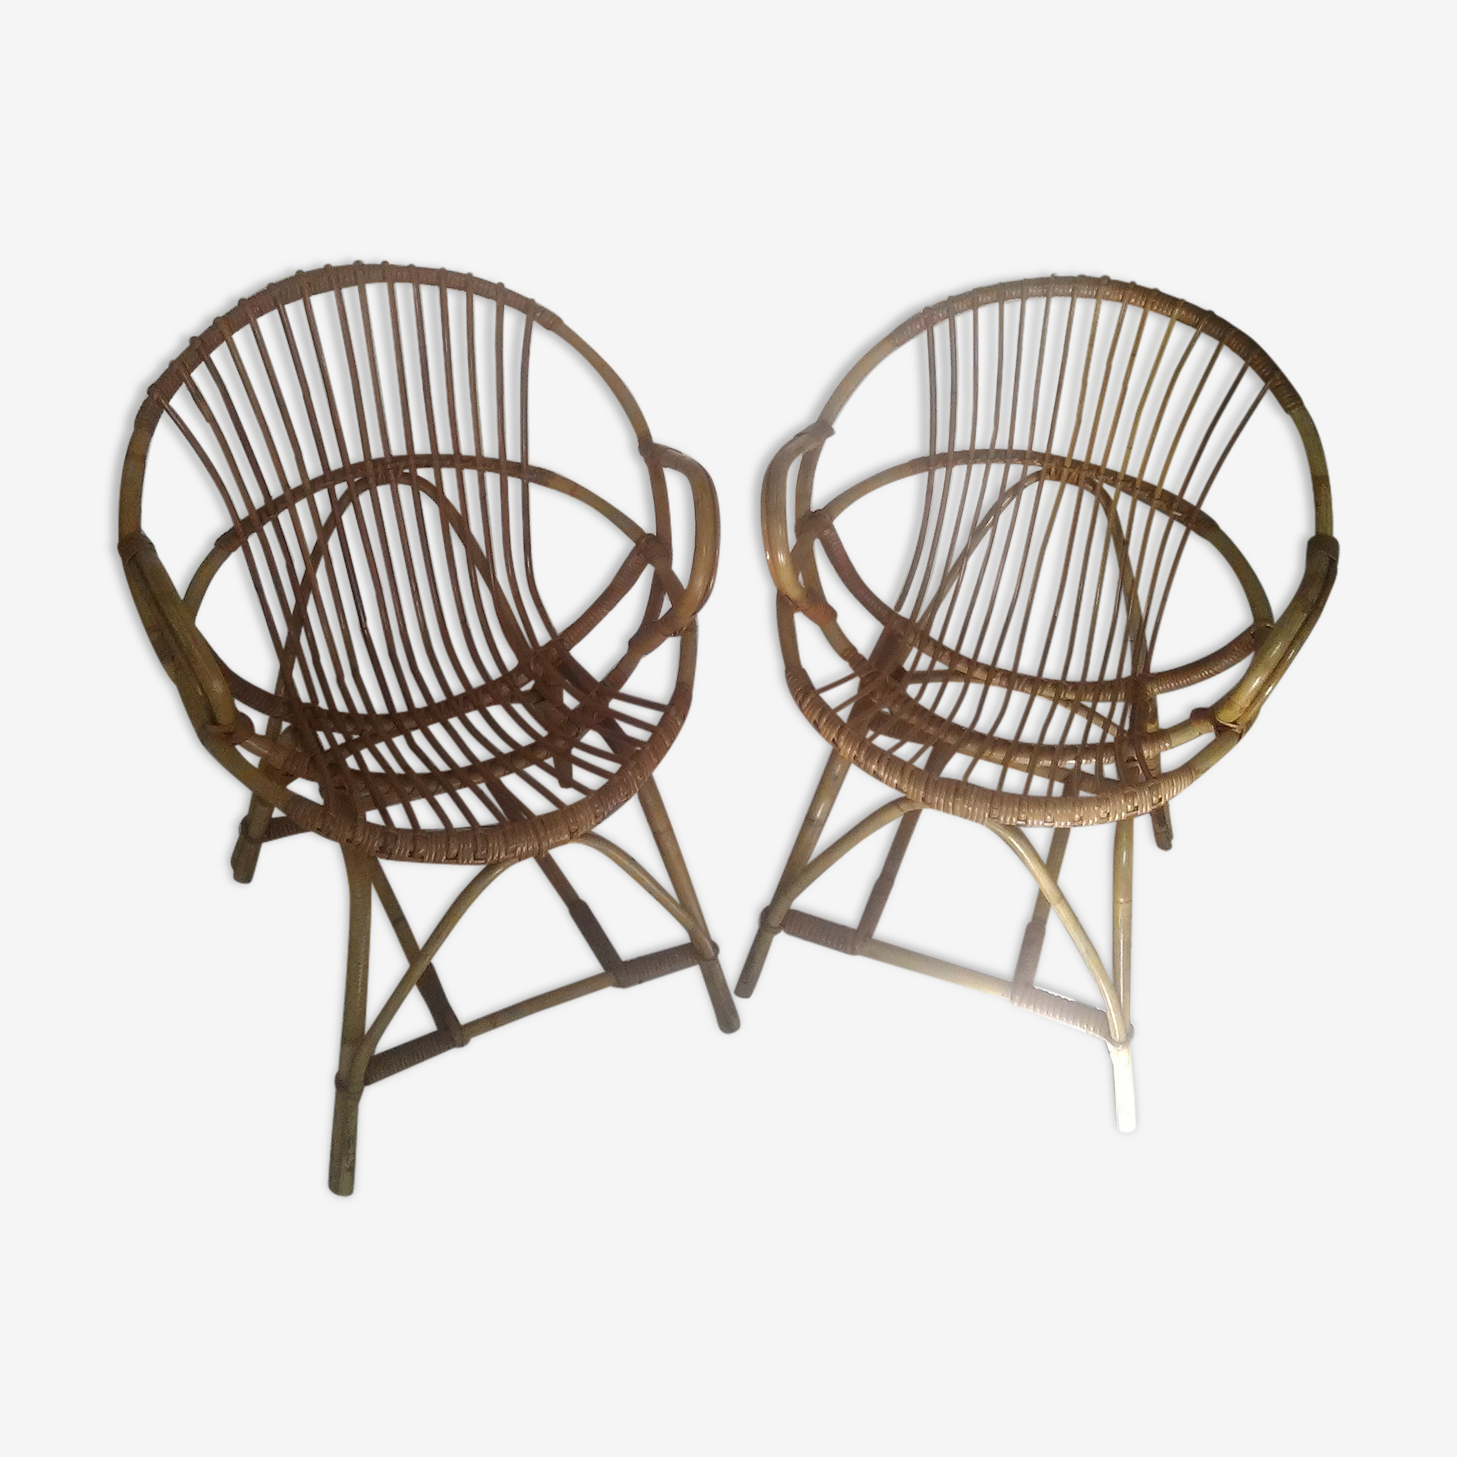 Set of 2 former chairs children shell rattan